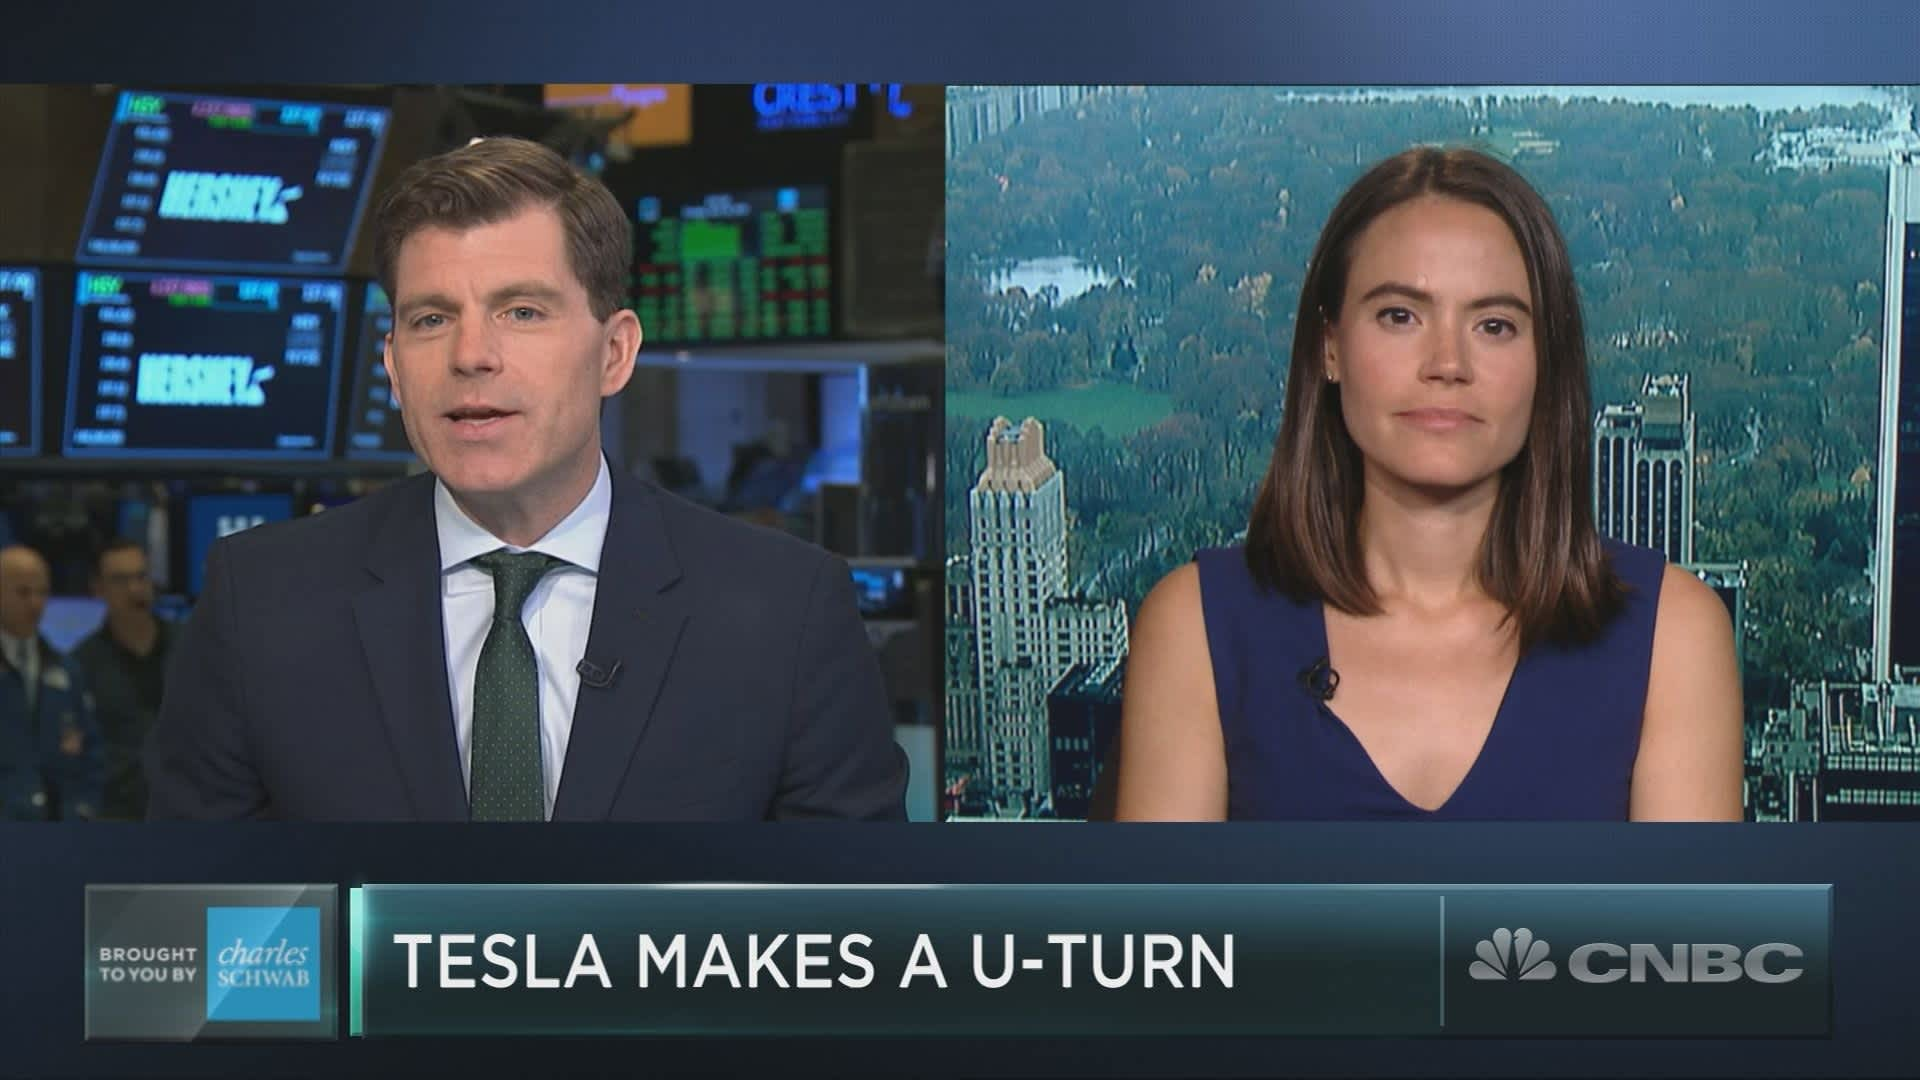 Tesla has a 'great lead' in this $2 trillion market opportunity: Analyst